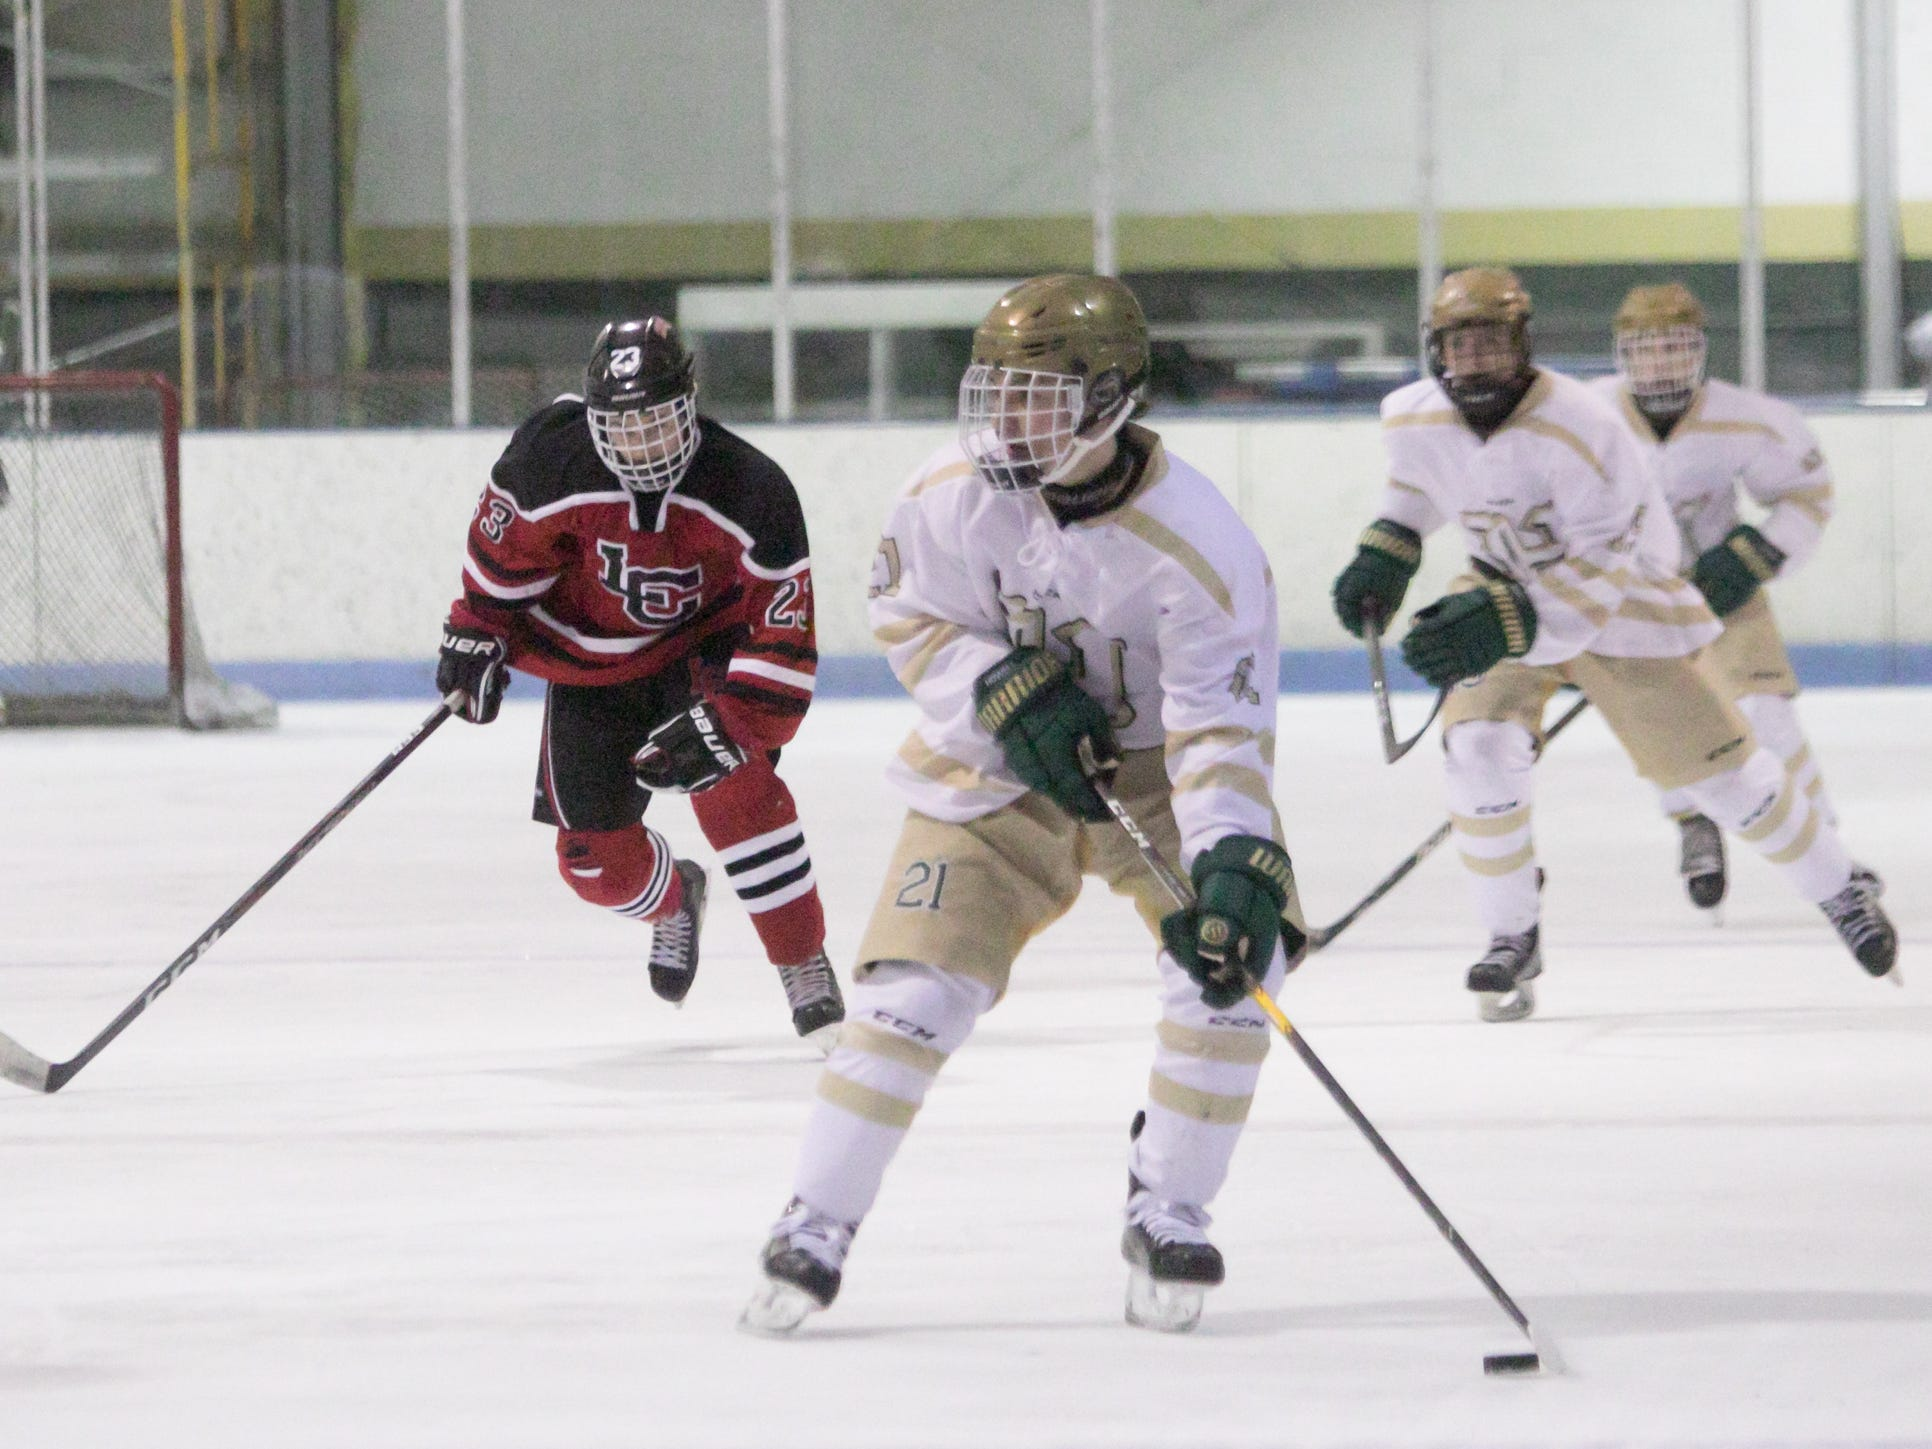 Graham Hassan of Howell scored three goals in a 6-3 victory over Livonia Churchill on Friday, Jan. 4, 2019 at Grand Oaks Ice Arena.